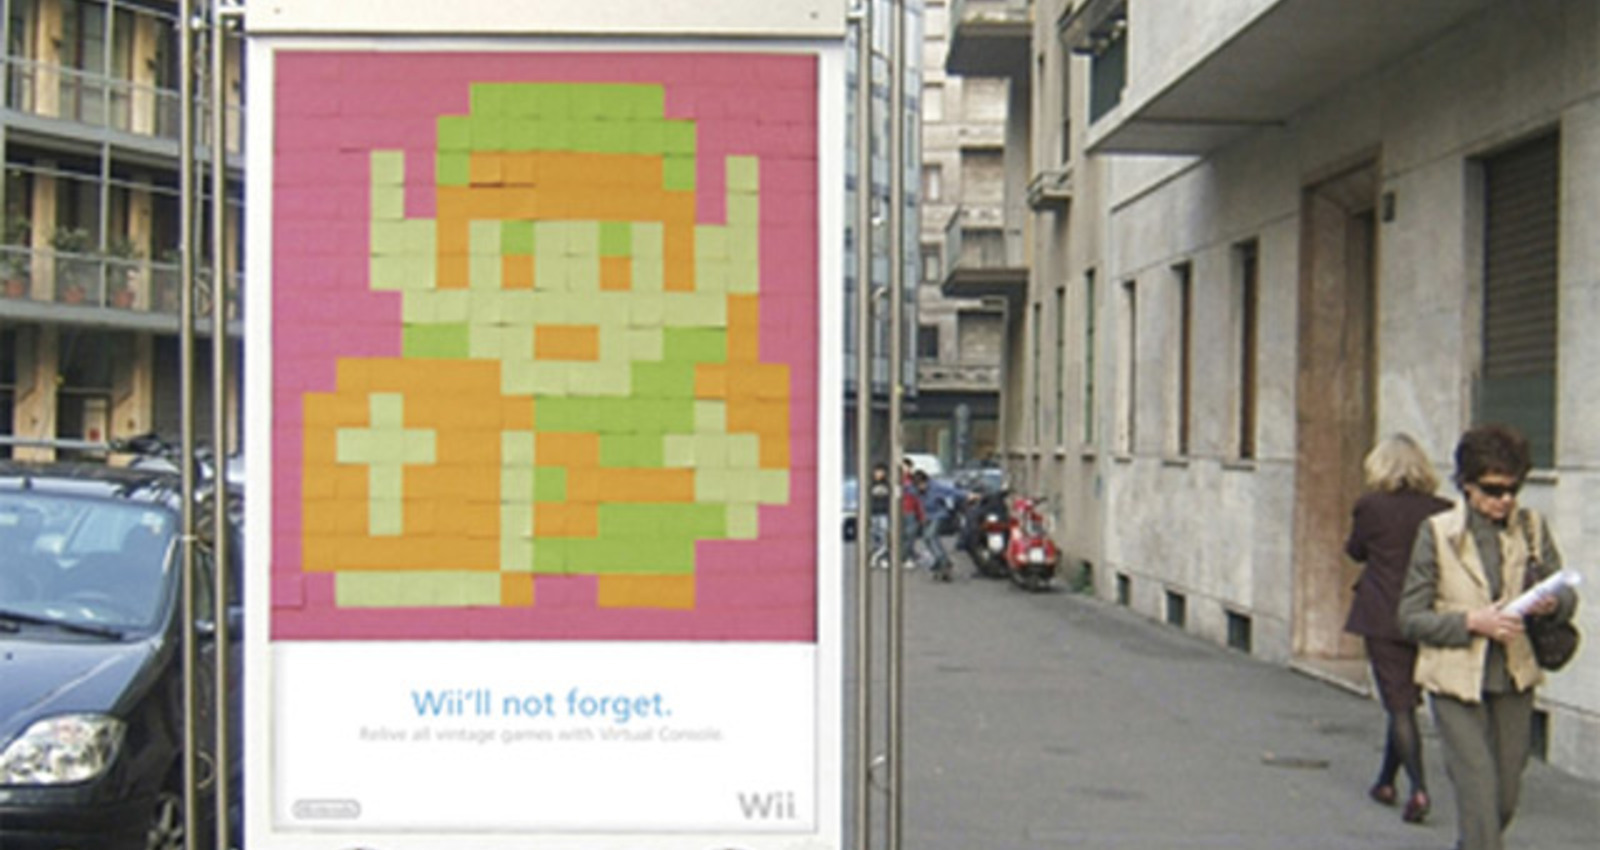 Nintendo Wii Post it